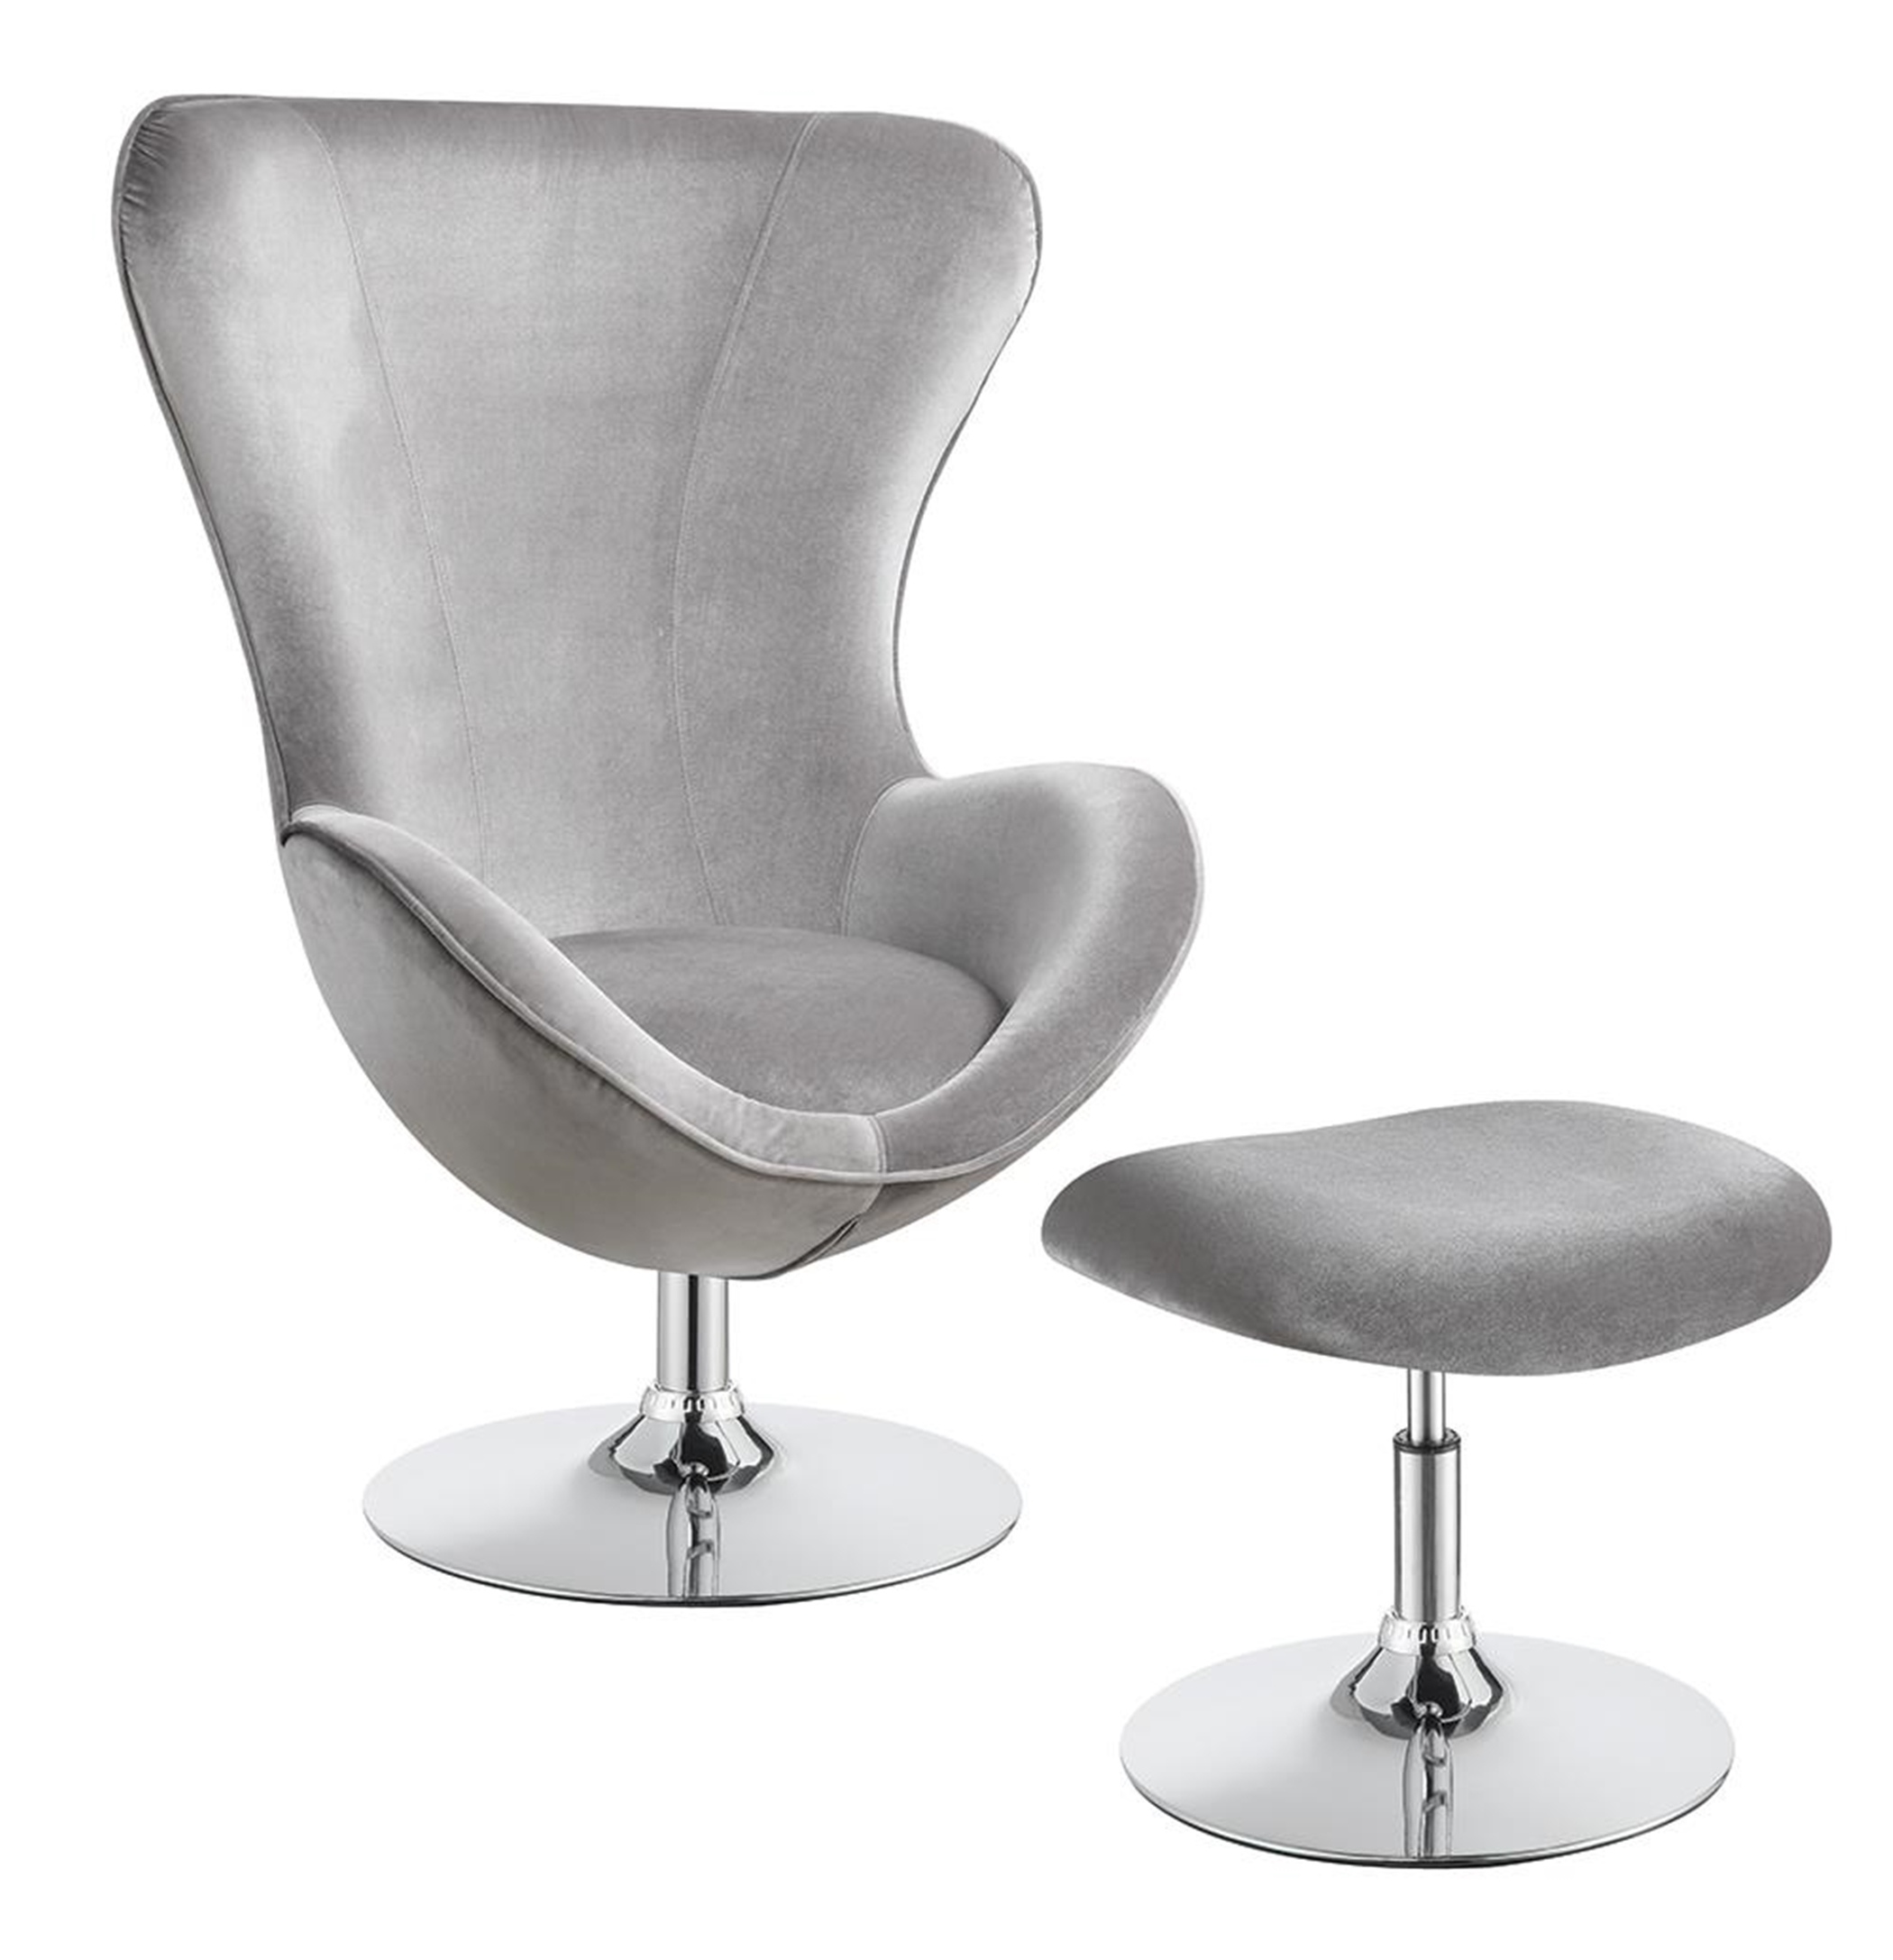 Grey and Chrome Chair and Ottoman